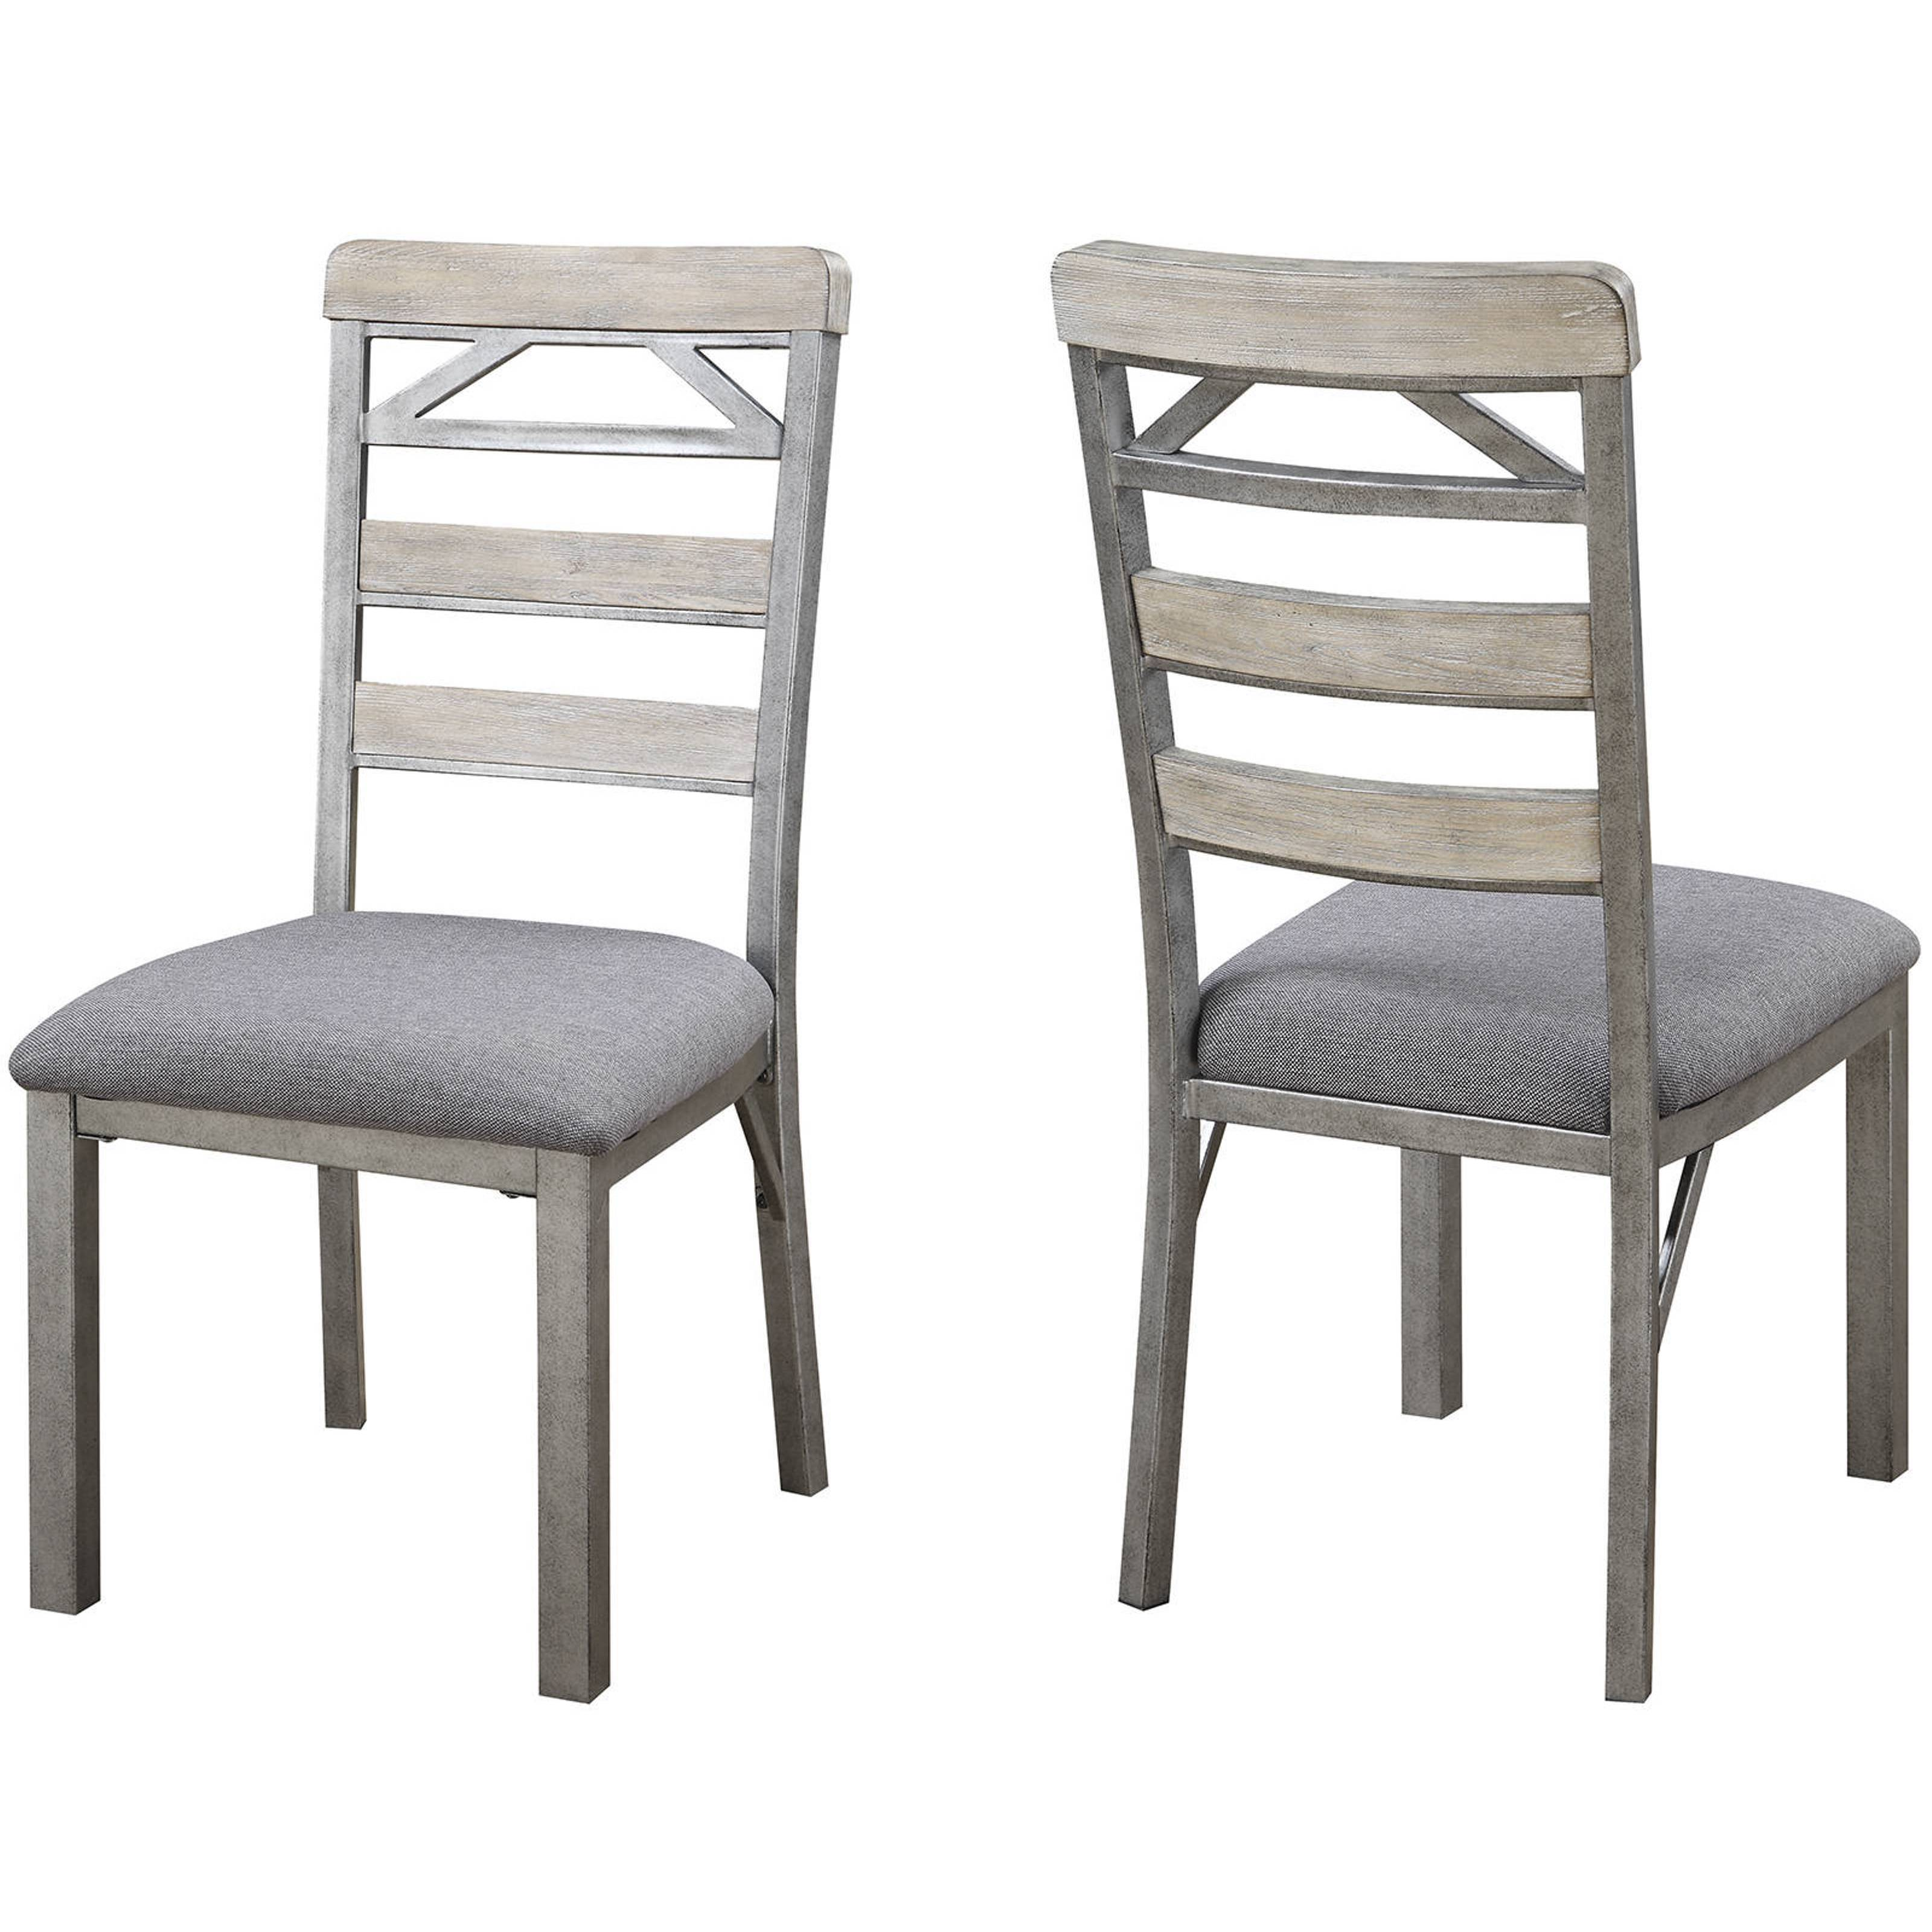 Shop Craftsman Architectural Industrial Designed Dining Chairs (Set Of 2)    Free Shipping Today   Overstock.com   12142320